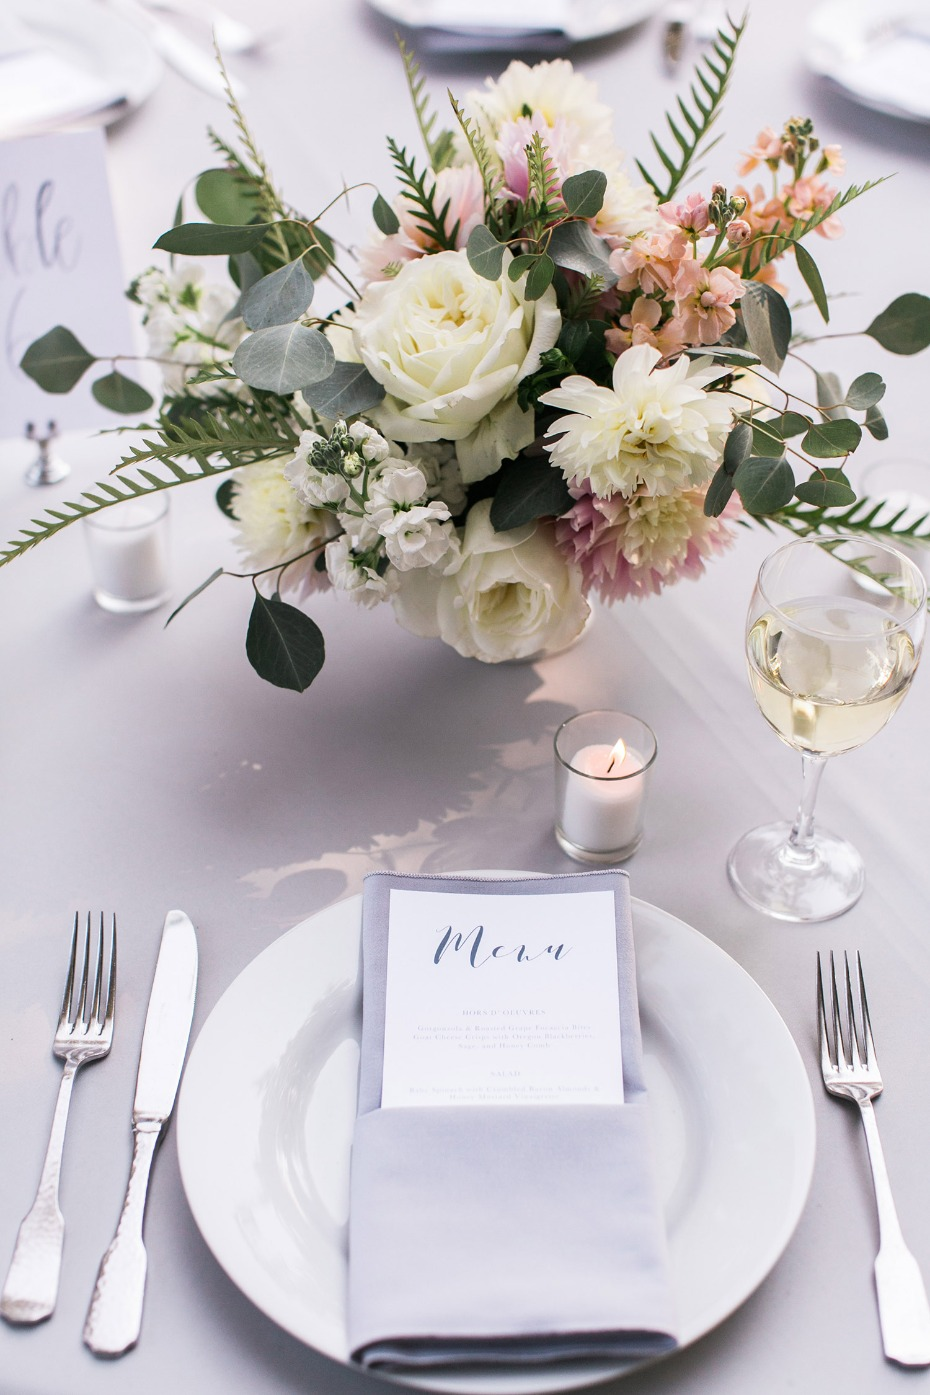 Simple and chic wedding table decor